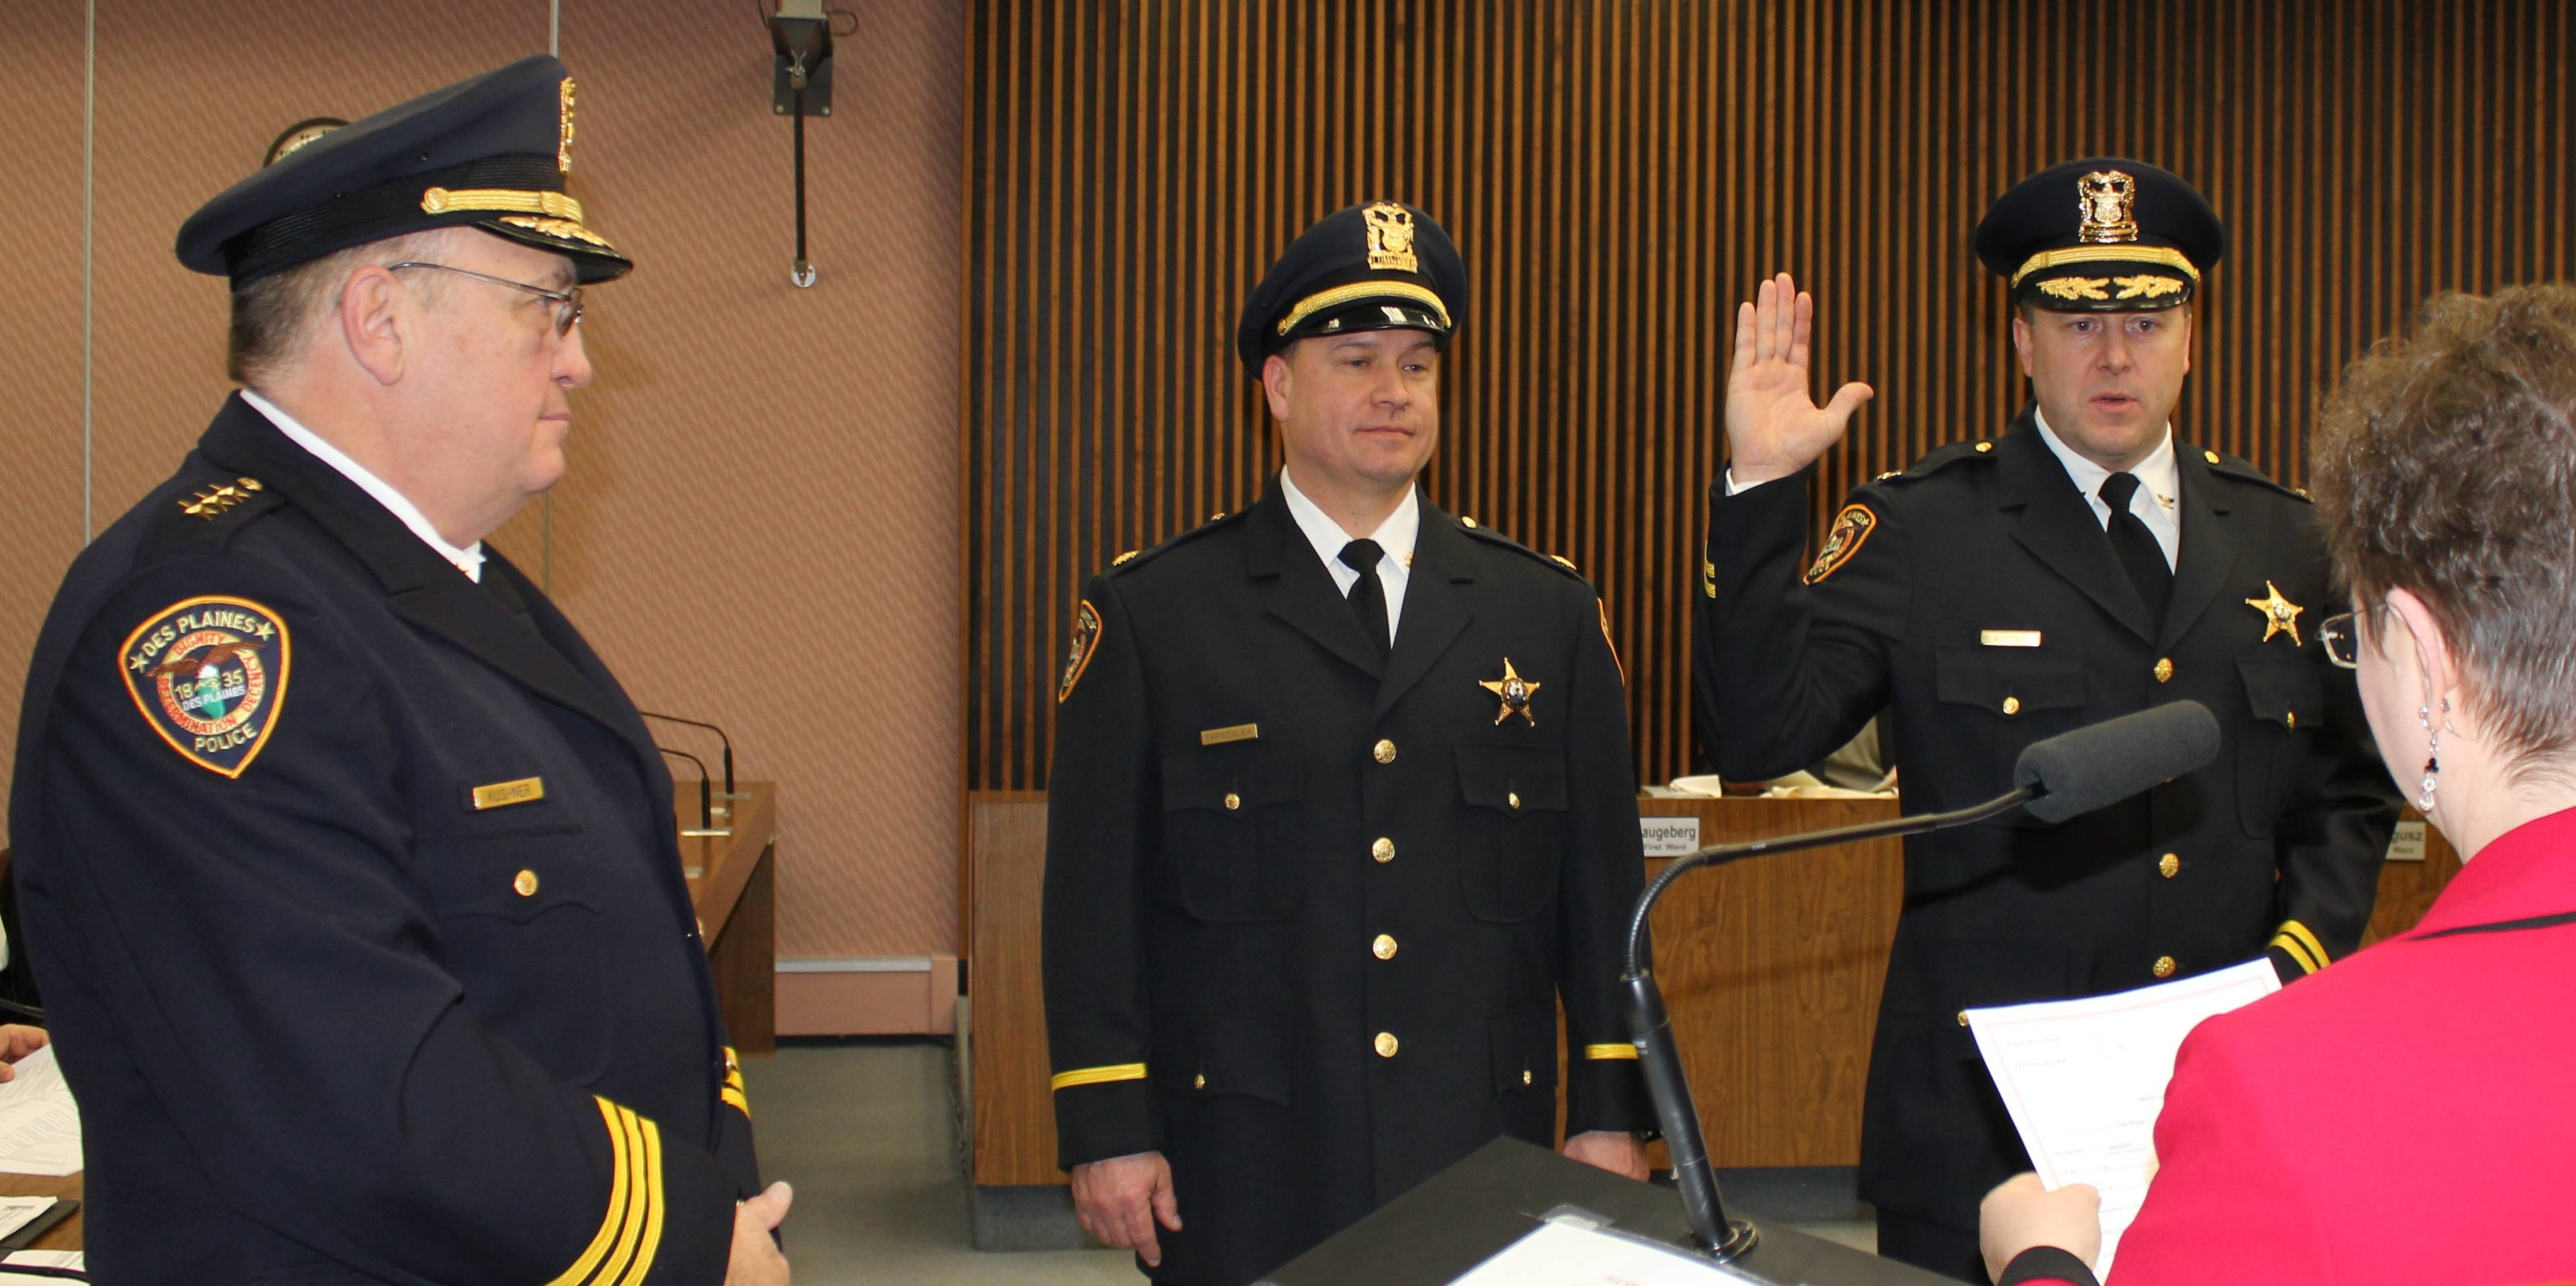 (pictured left to right) Des Plaines Police Chief William Kushner and Sergeant Chester Zaprzalka, awaiting the issuance of the oath of Commander, Support Services, listen as Police Commander Paul Burger recites the oath of Deputy Chief to City Clerk Gloria Ludwig at the February 4, 2013, City Council Meeting at City Hall.